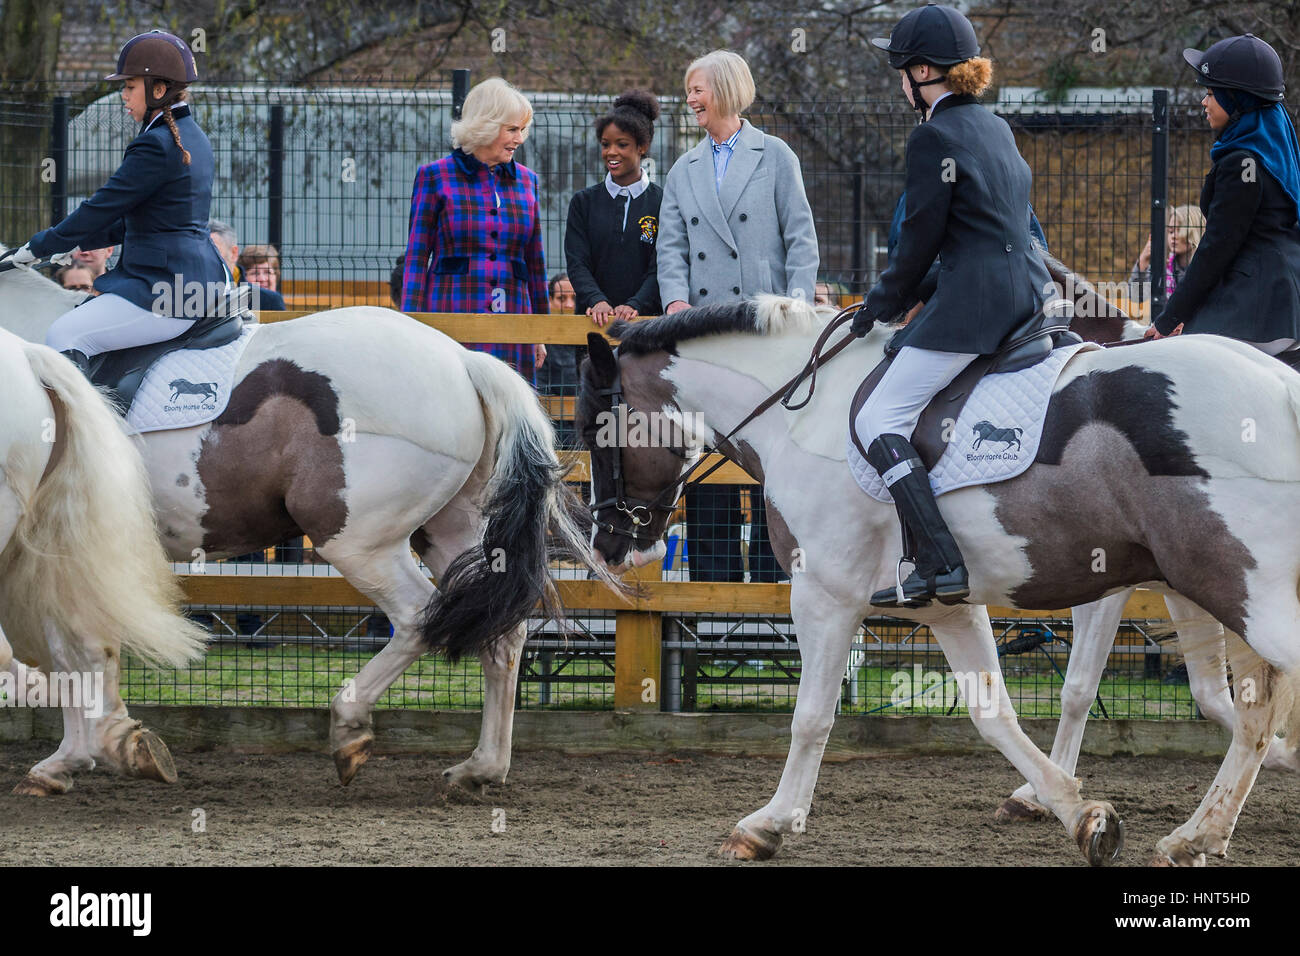 London, UK. 16th February 2017. Watching the riding display - The Duchess of Cornwall, President, Ebony Horse Club, - Stock Image